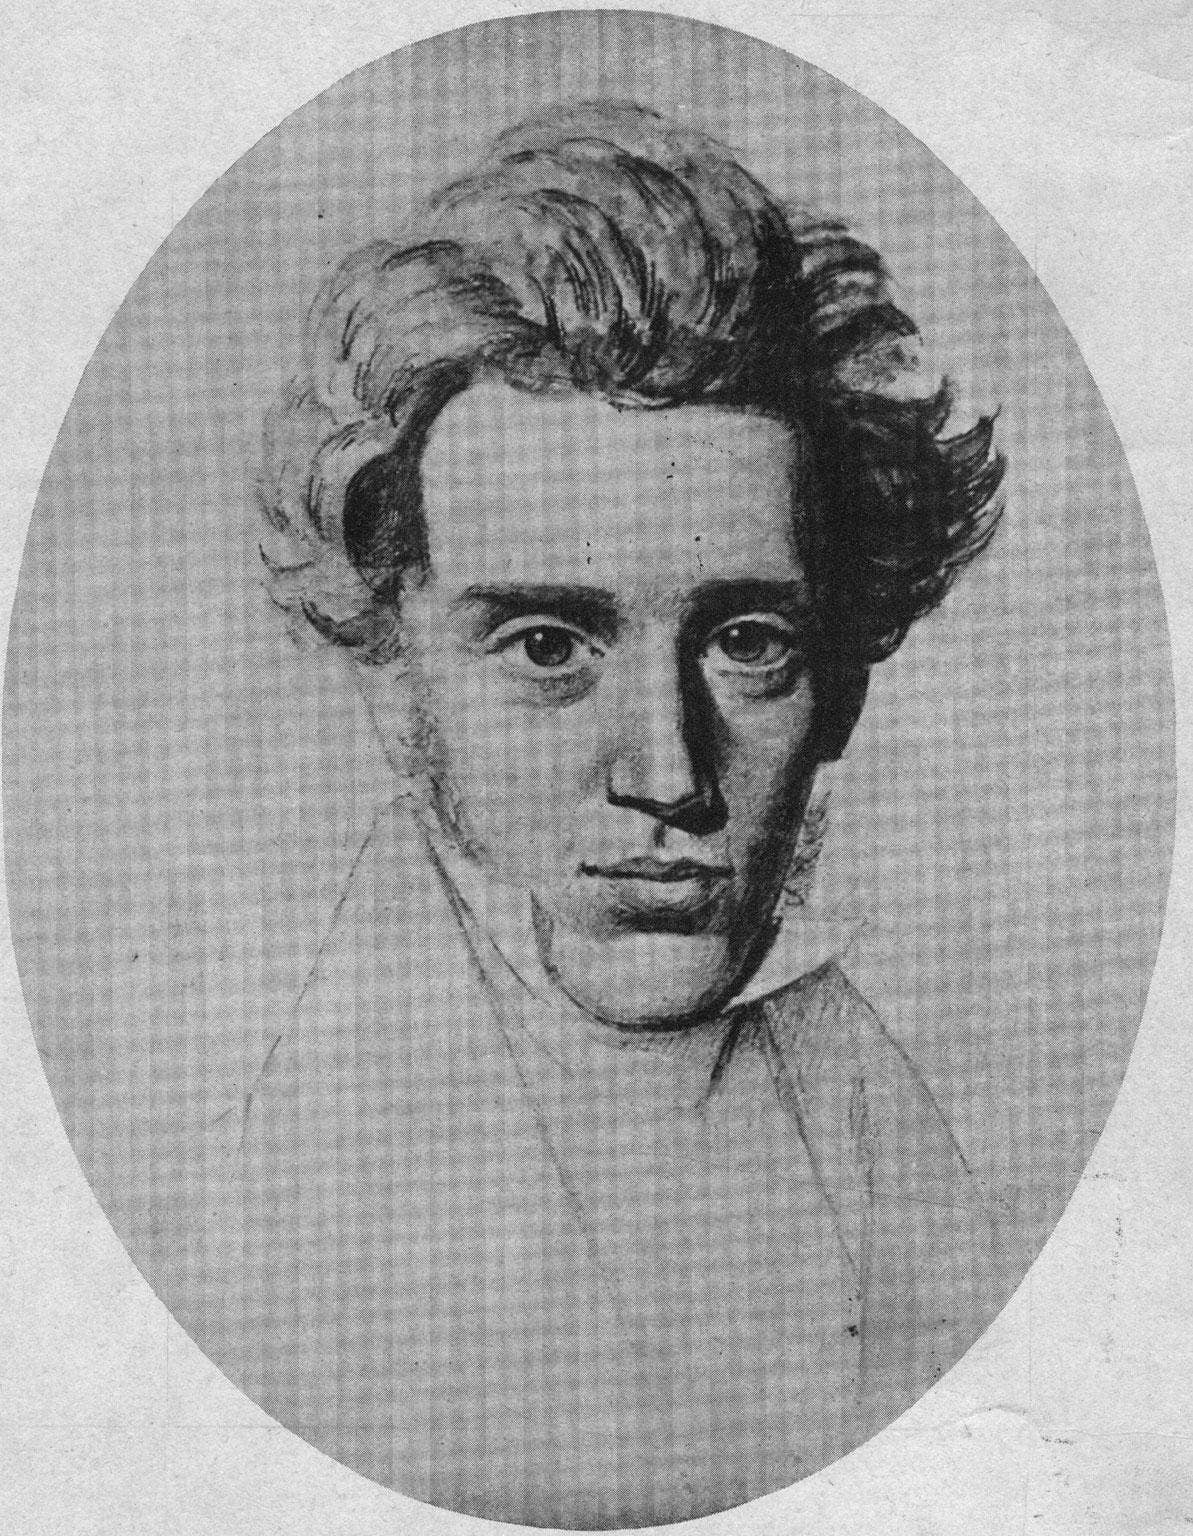 """Søren Aabye Kierkegaard was born on the May 5th 1813 and is considered one of the most significant and prolific writers of the Danish """"golden age"""" of intellectual and artistic activity."""